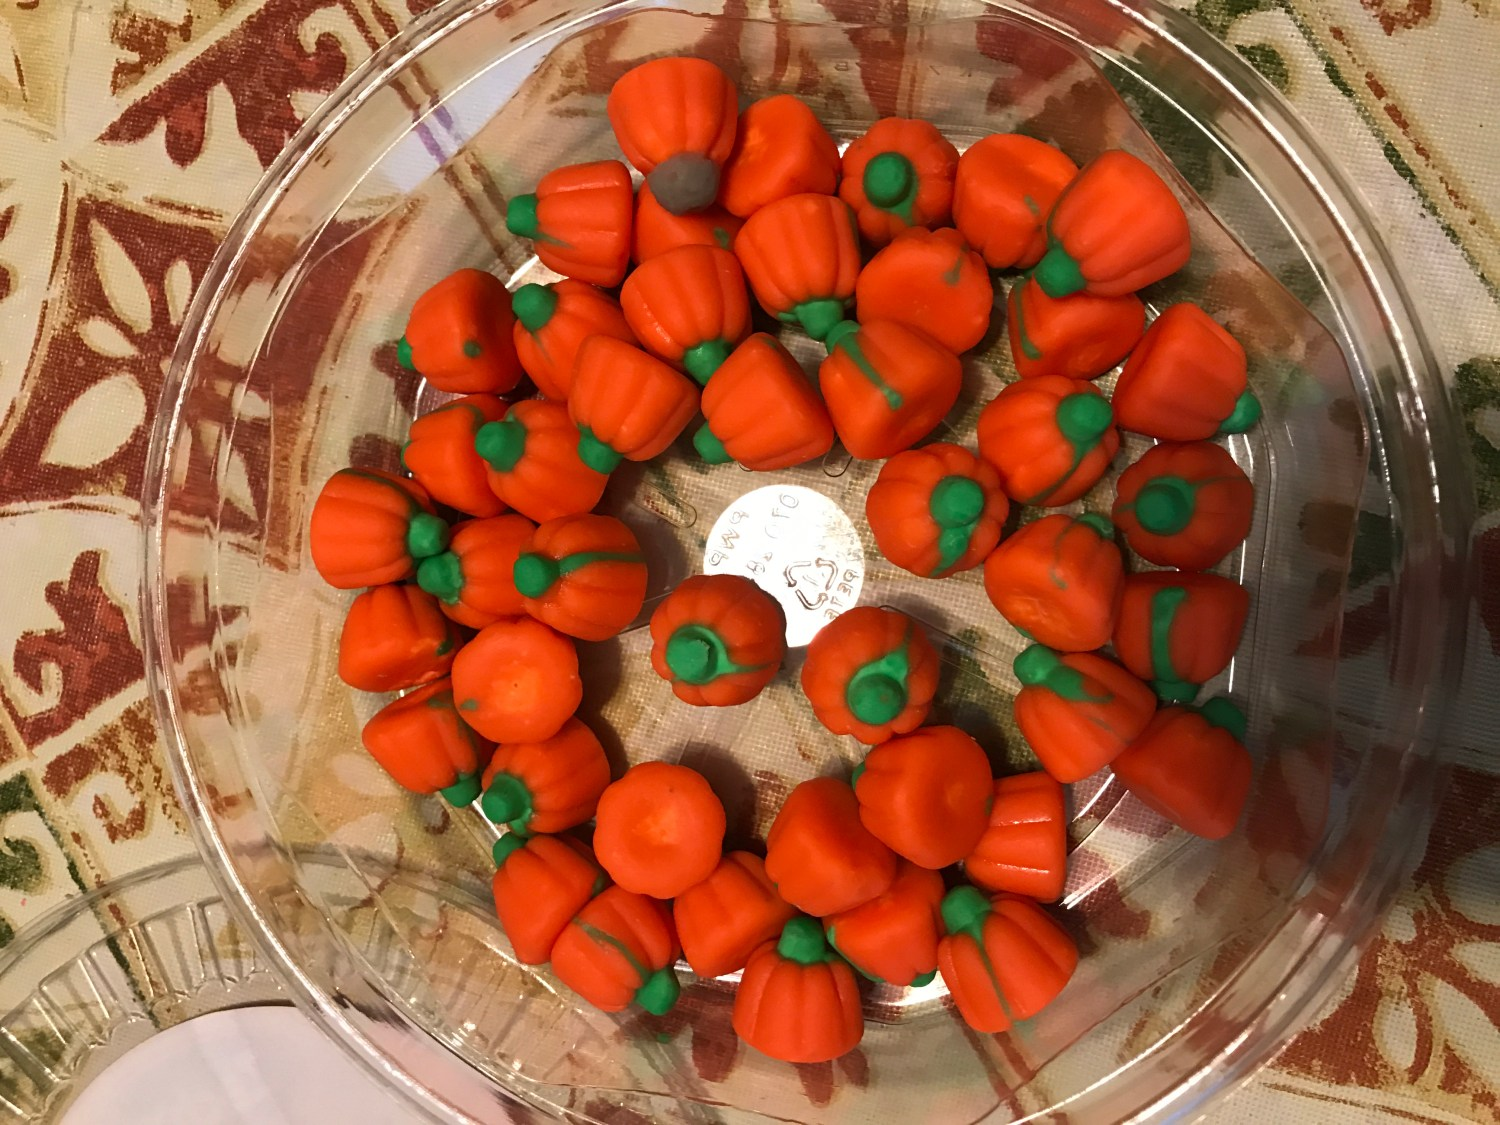 Zachary Pumpkins are gluten-free, dairy-free, and soy-free Halloween candy.